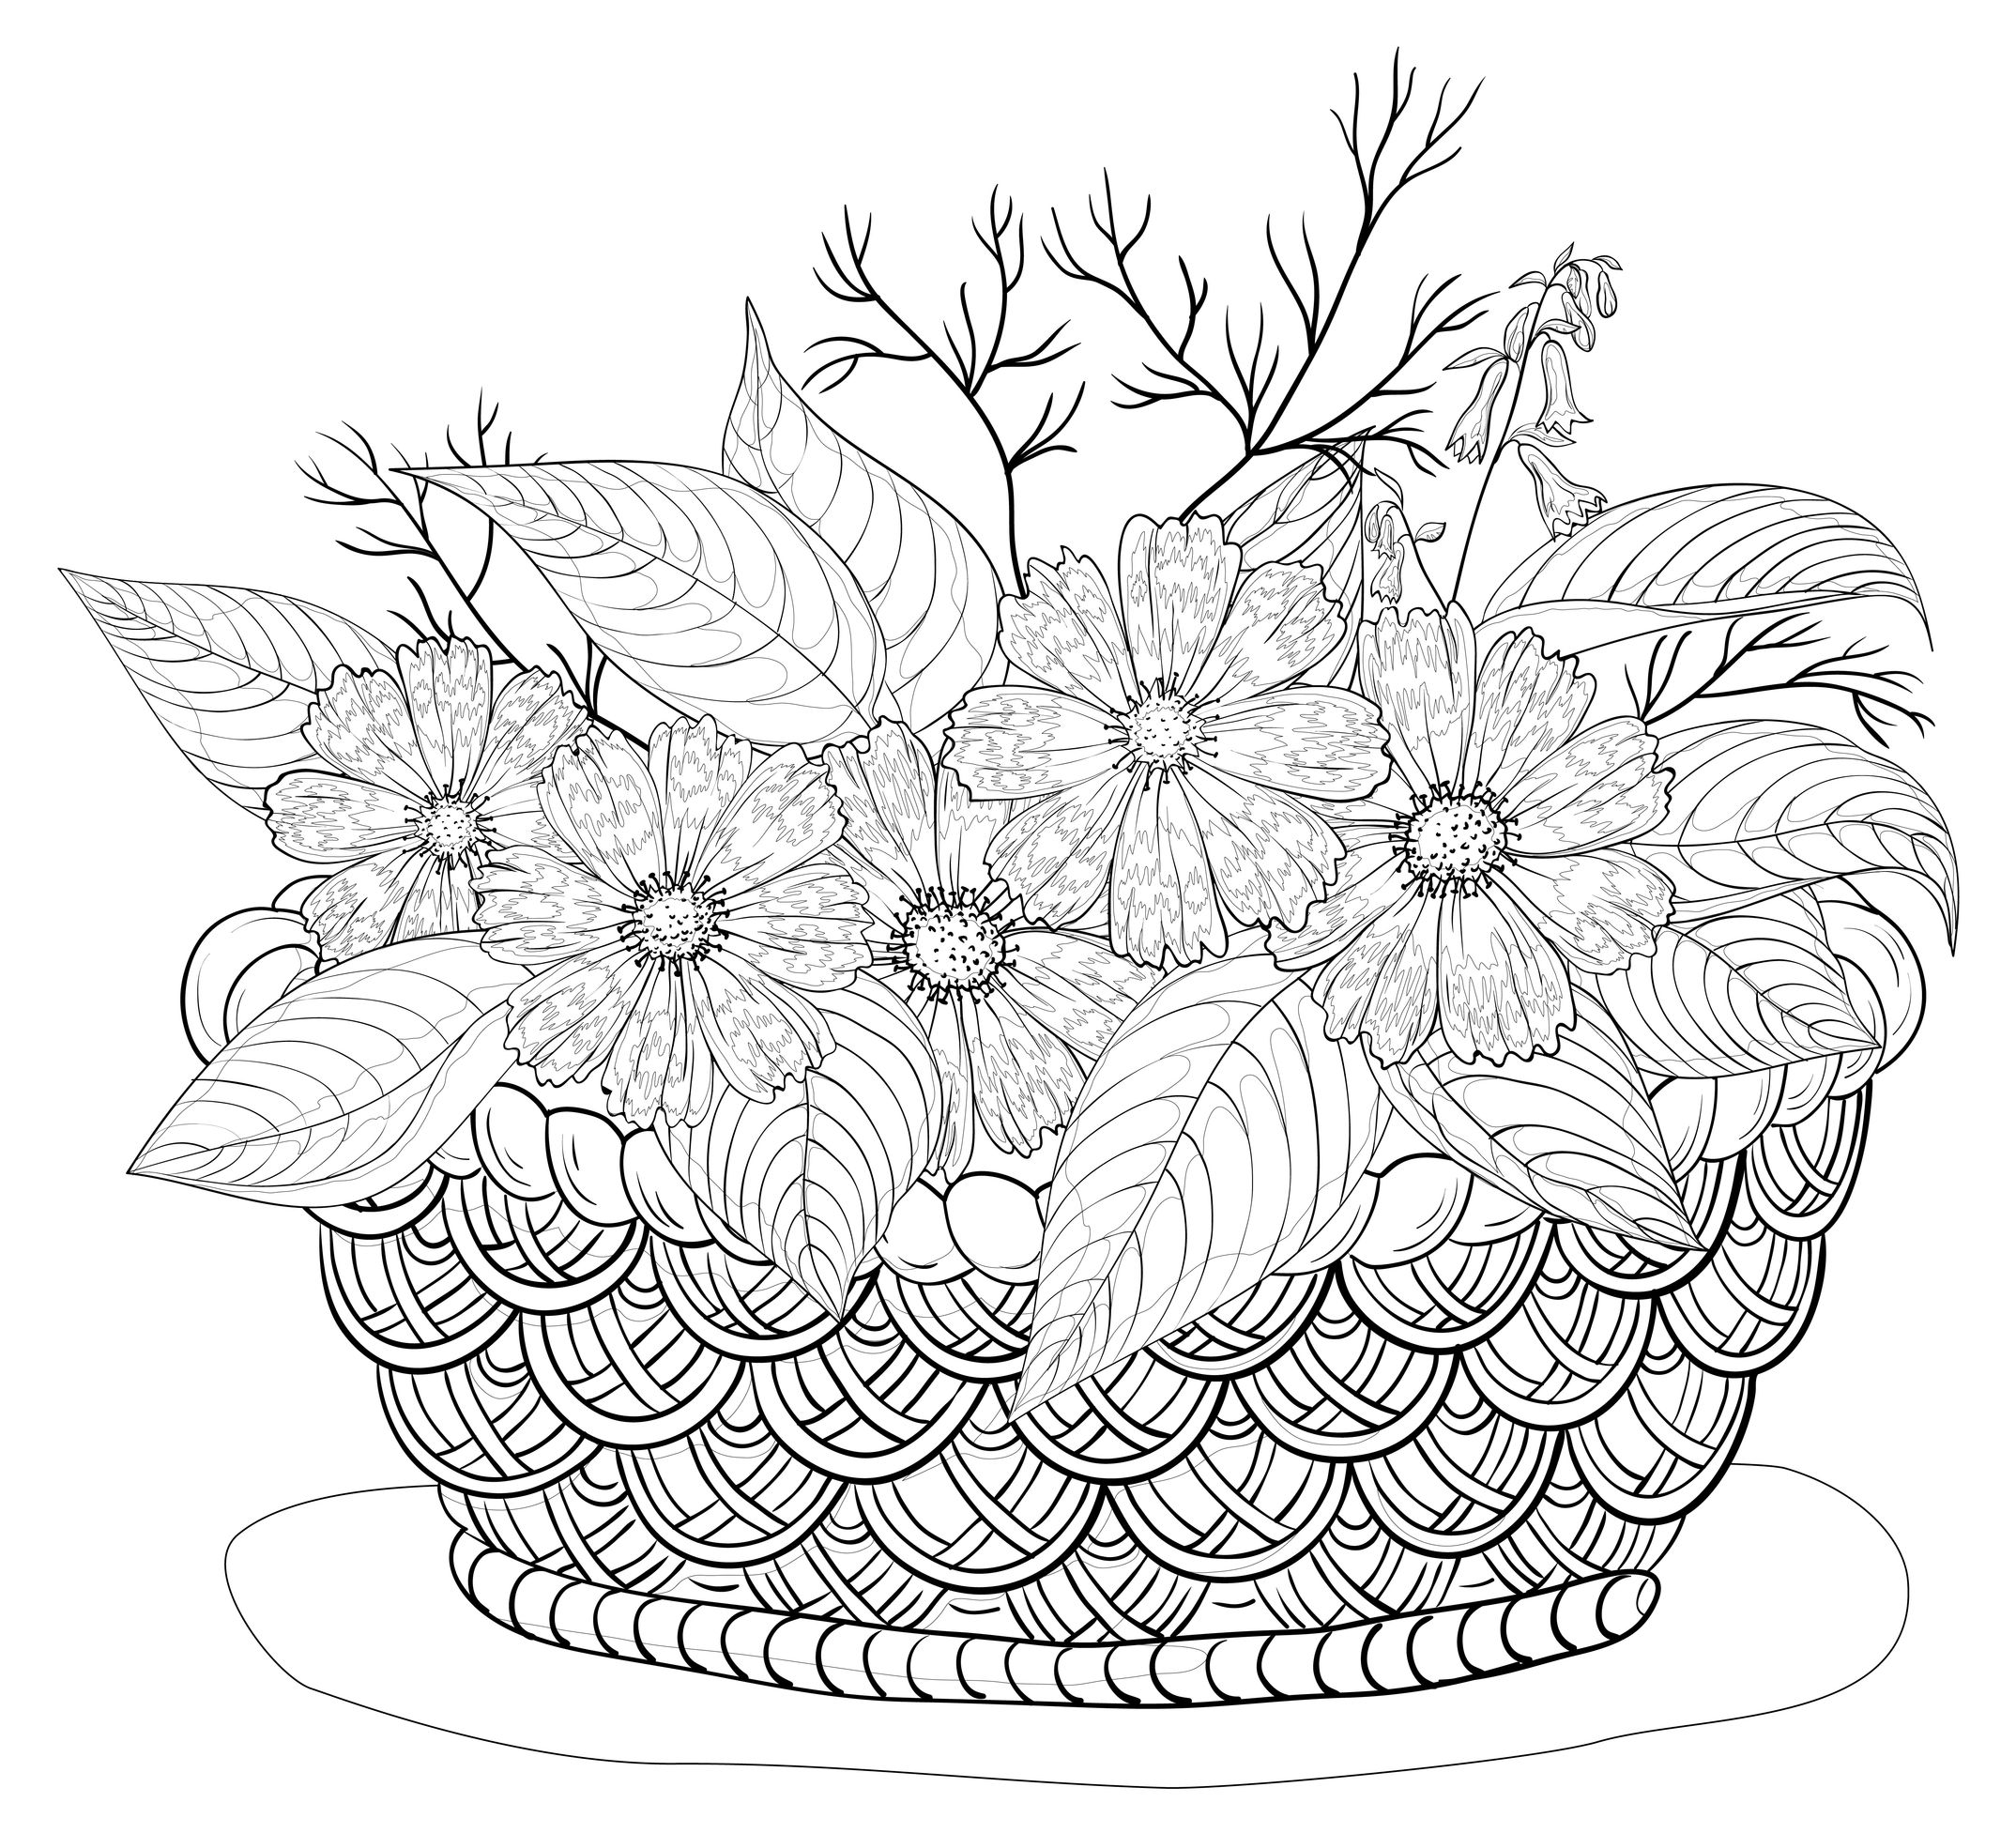 90 dessins de coloriage nature adulte imprimer - Dessin colorier ...